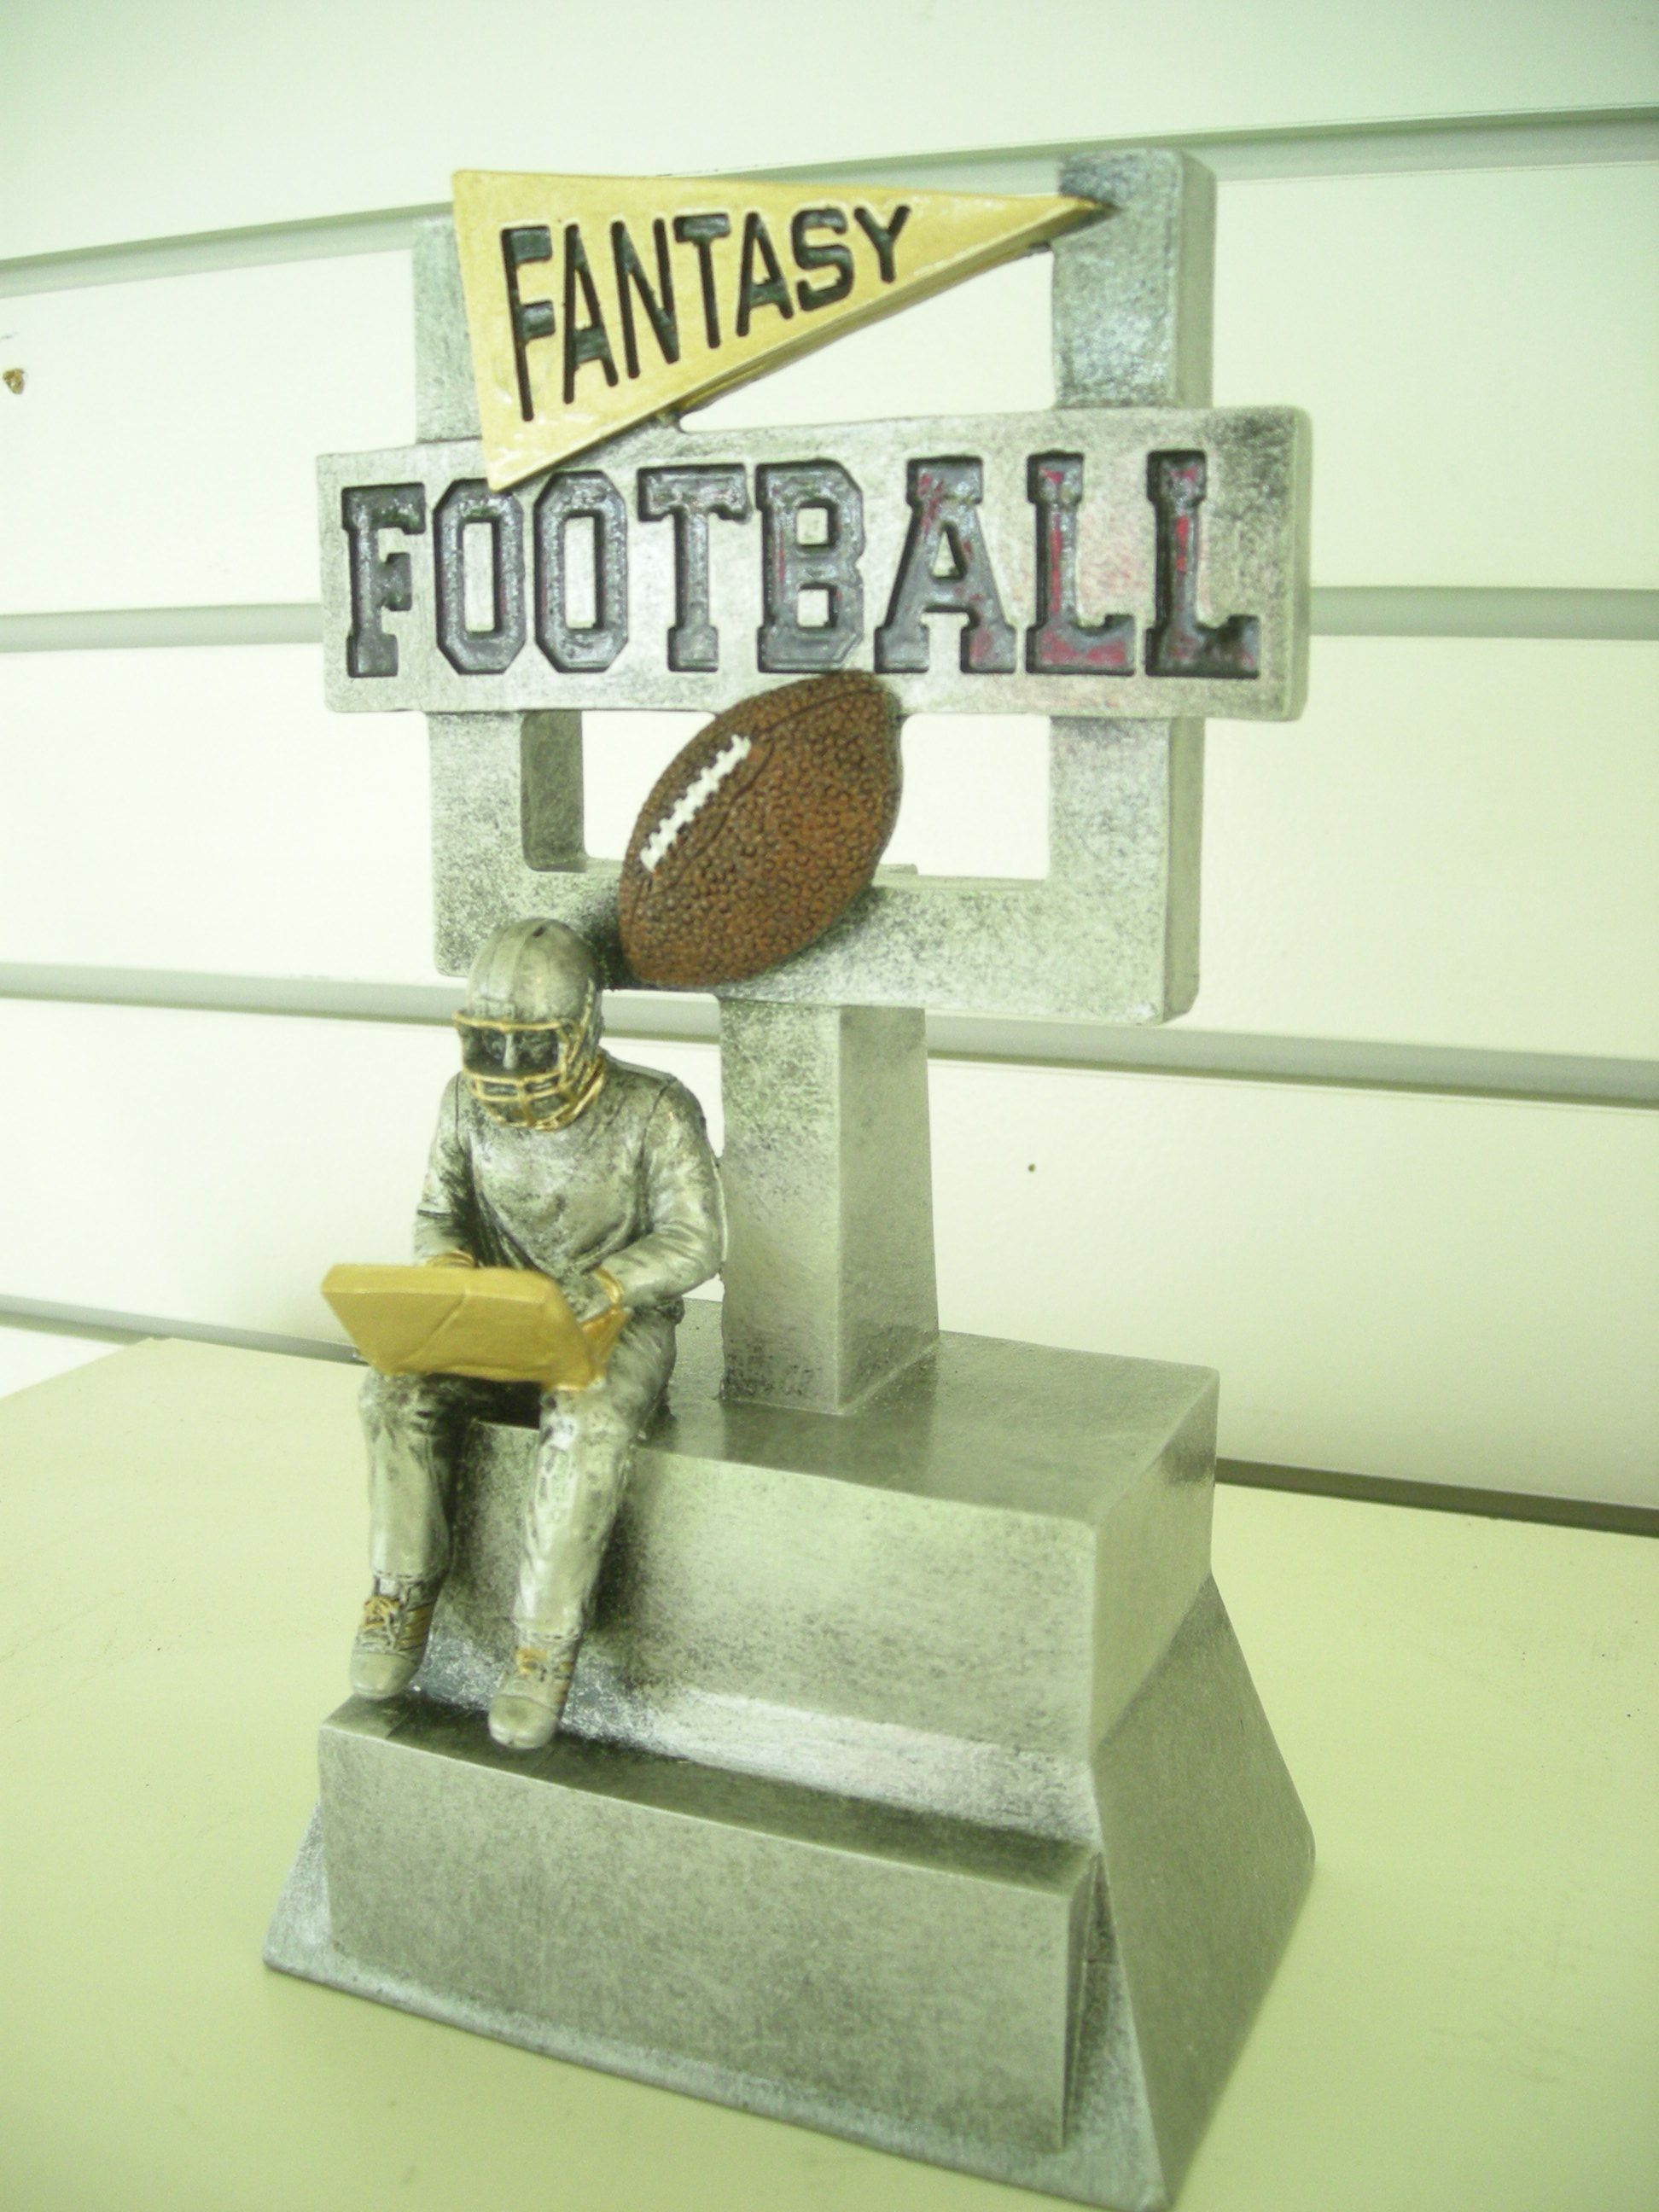 For the individuals on your fantasyfootball team this is